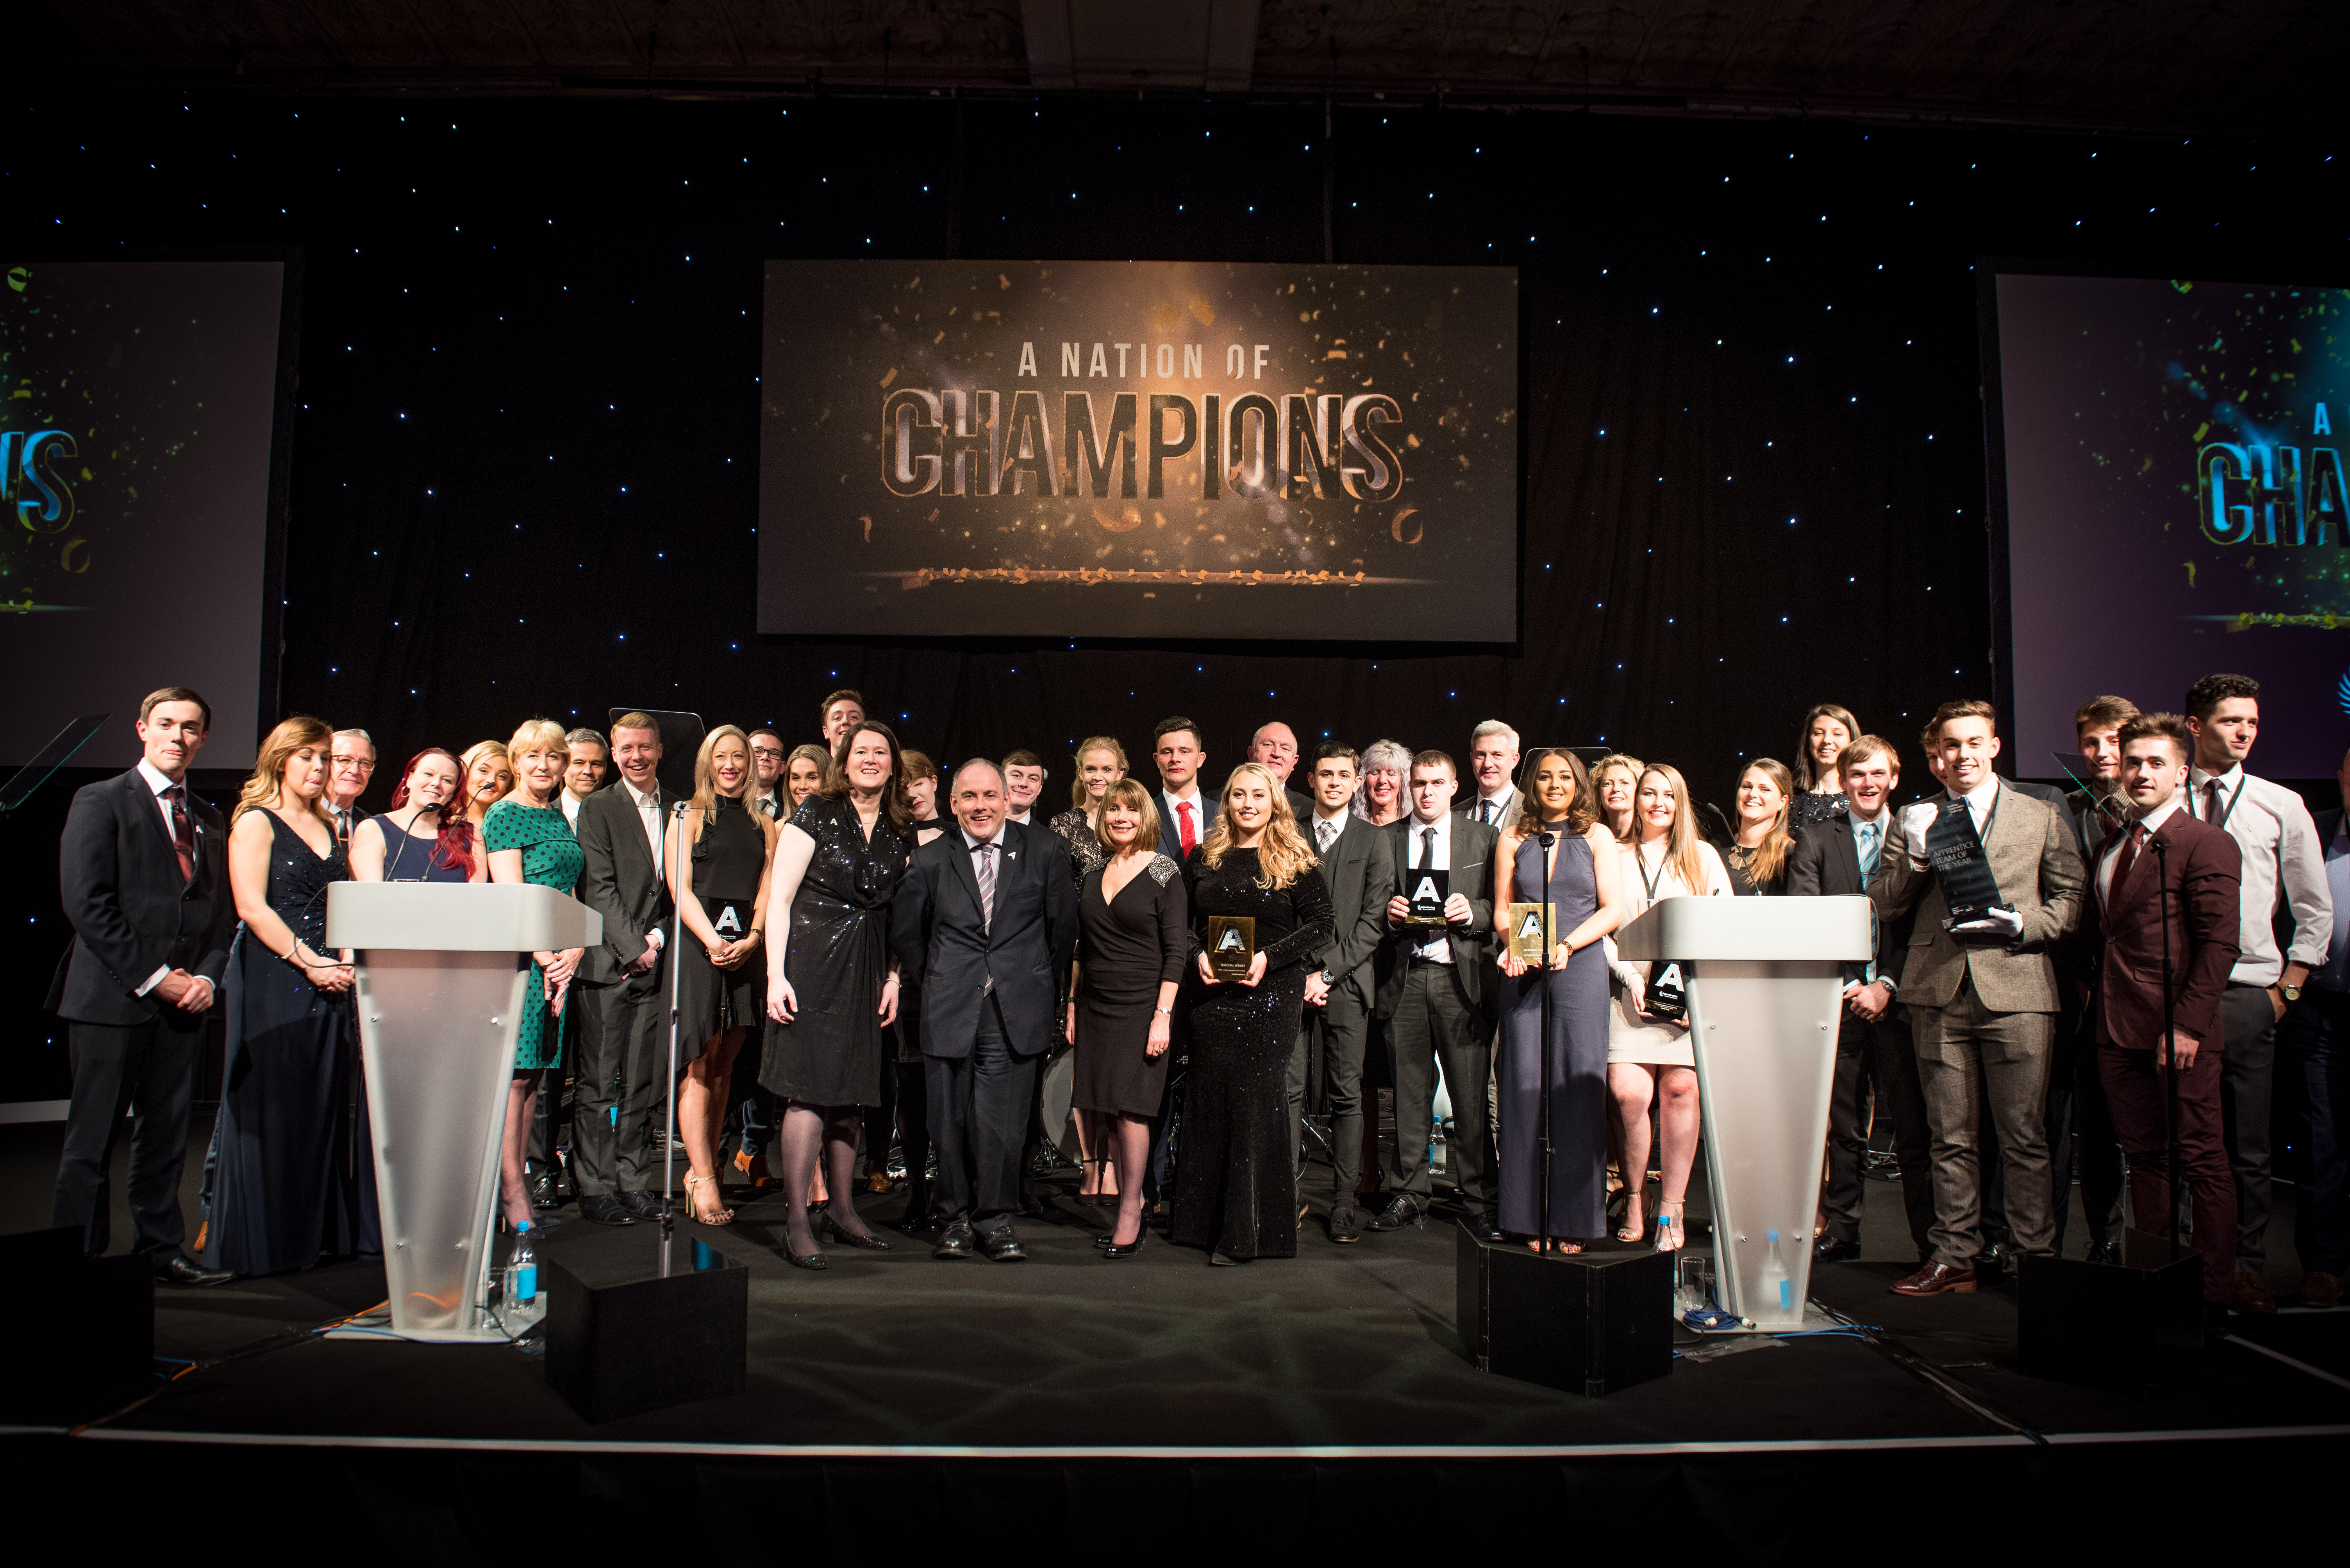 National Apprenticeship Awards 2016's Finalists at the final awards ceremony at The Grosvenor House Hotel, London. 20.01.17 Photographer: Mary Stamm-Clarke & Simon Johns